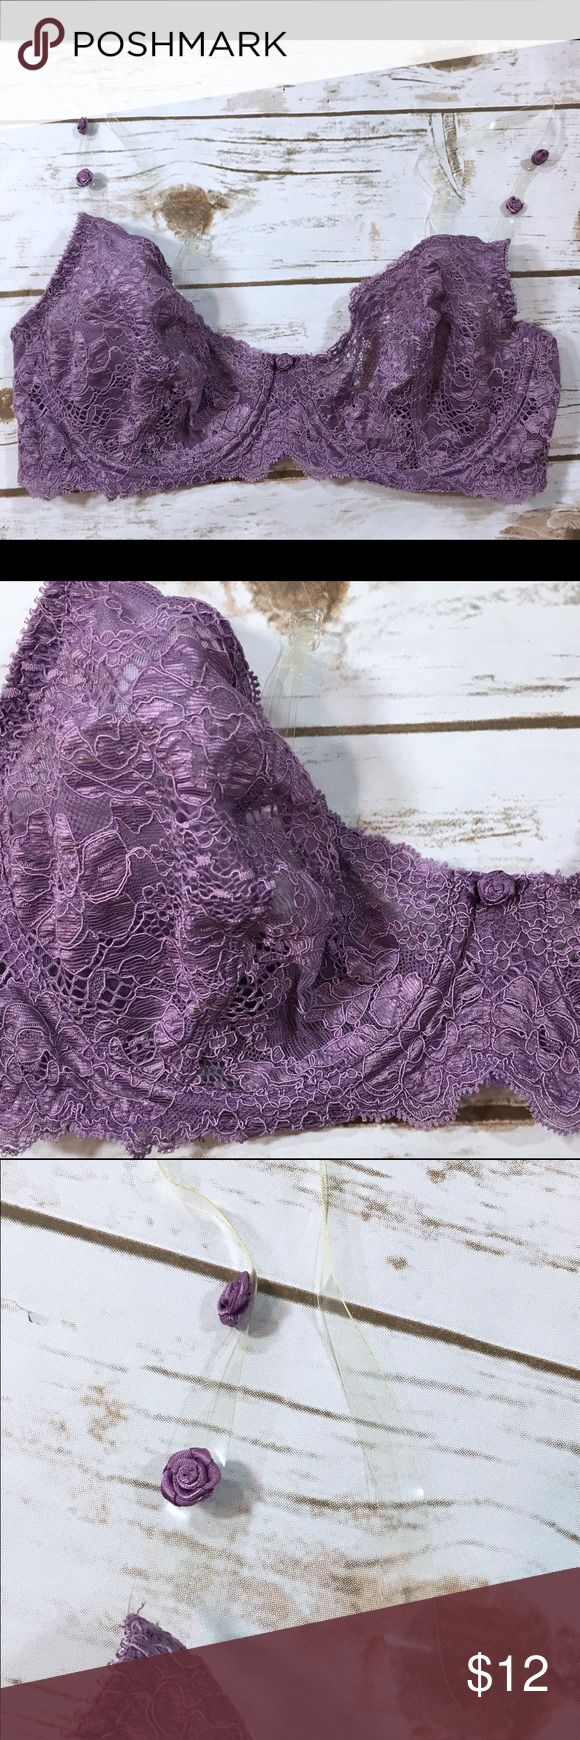 Victoria's Secret Lace Bra w/Clear Straps Victoria's Secret purple lace unlined bra with clear straps. Straps have decorative purple rosettes on them. Bra has underwire, no padding.   Labeled a size 36D.  Very good preowned condition. No holes, stains, or other flaws to note. Victoria's Secret Intimates & Sleepwear Bras